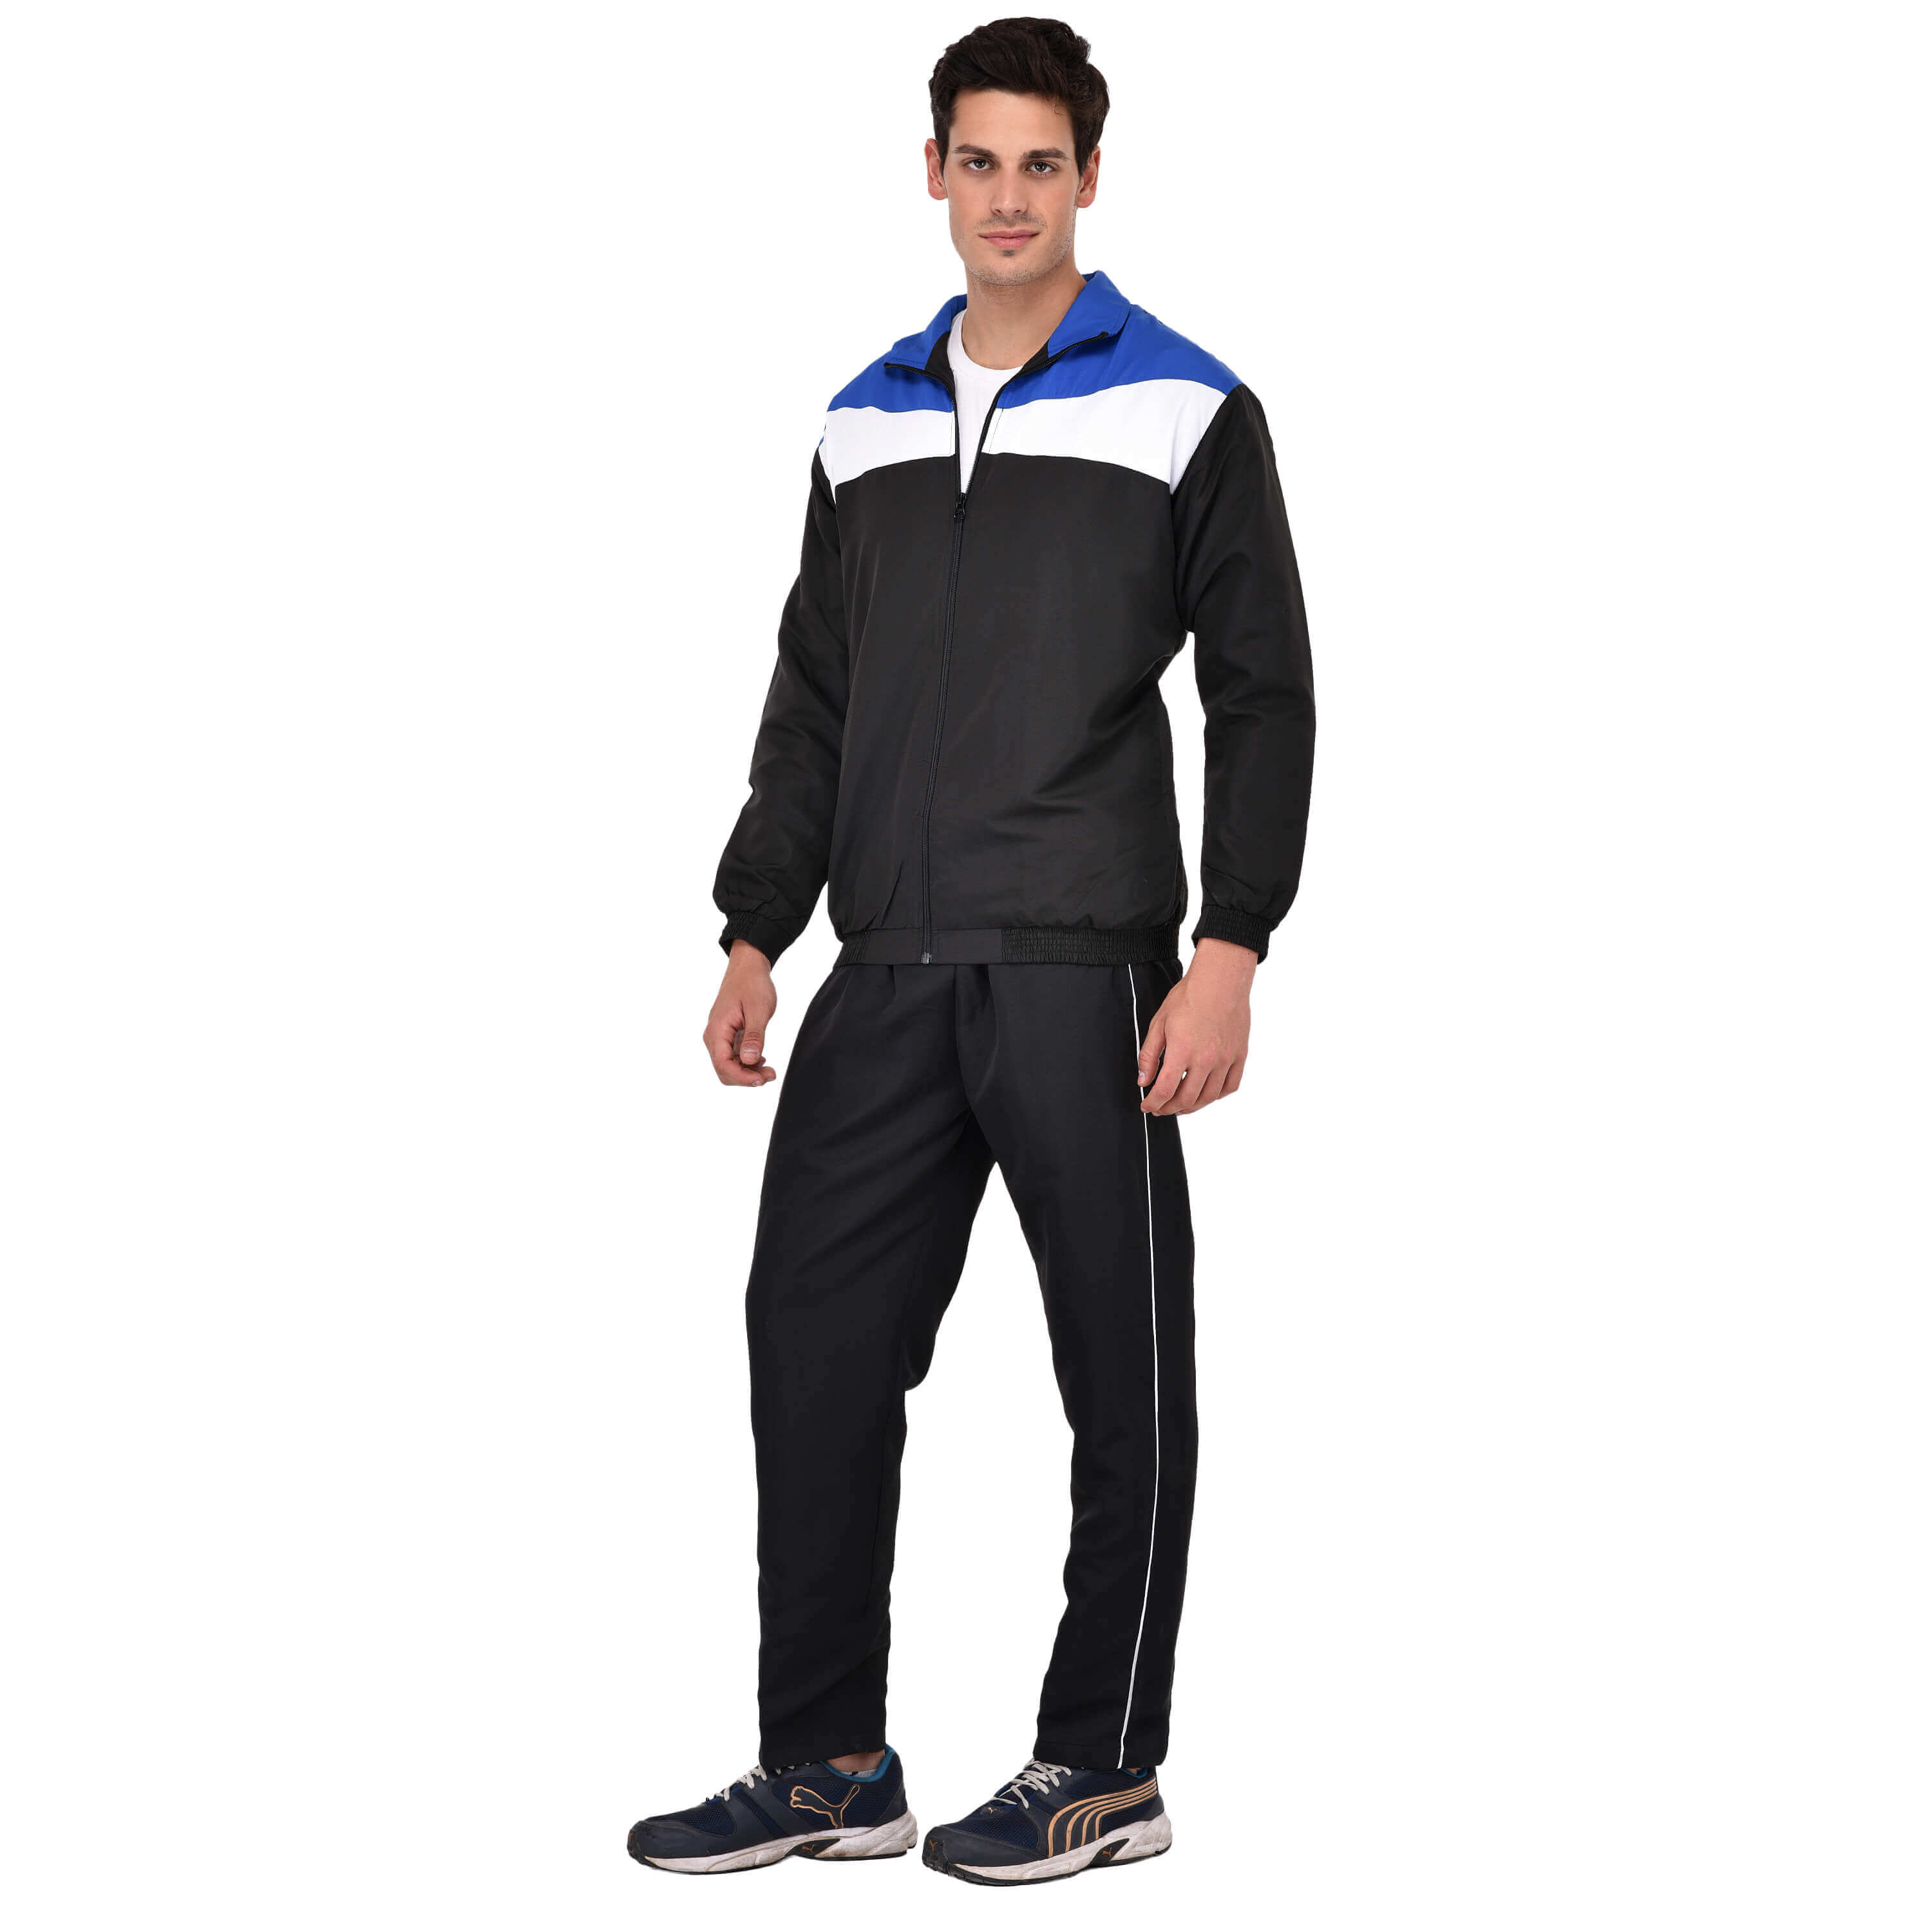 Tracksuit Set Manufacturers in Noida